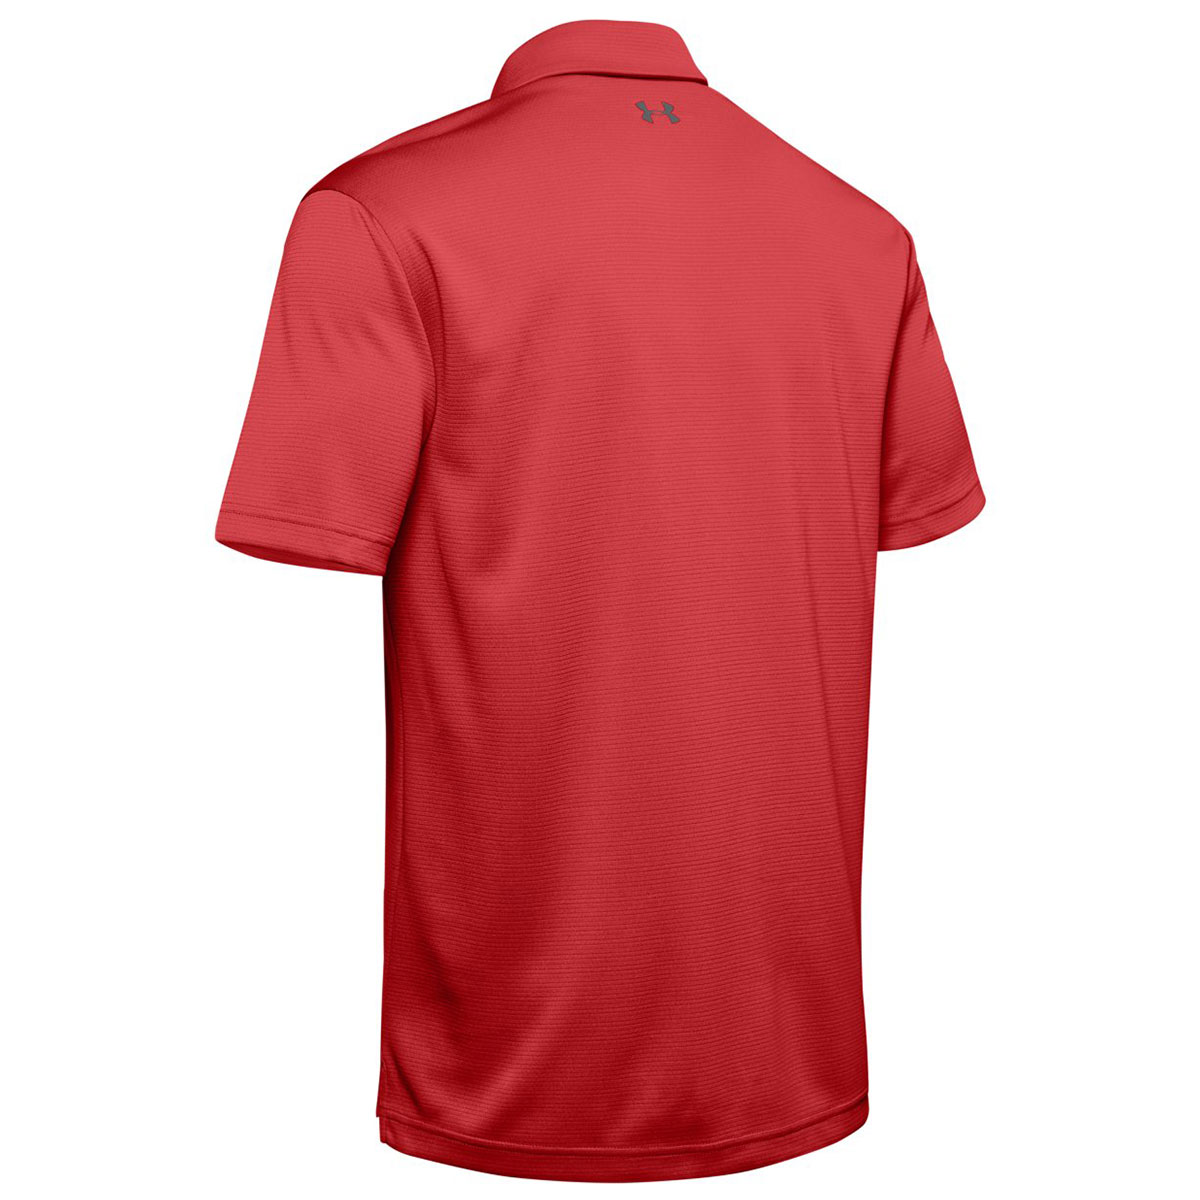 Under-Armour-Mens-Golf-Tech-Wicking-Textured-Soft-Light-Polo-Shirt thumbnail 53